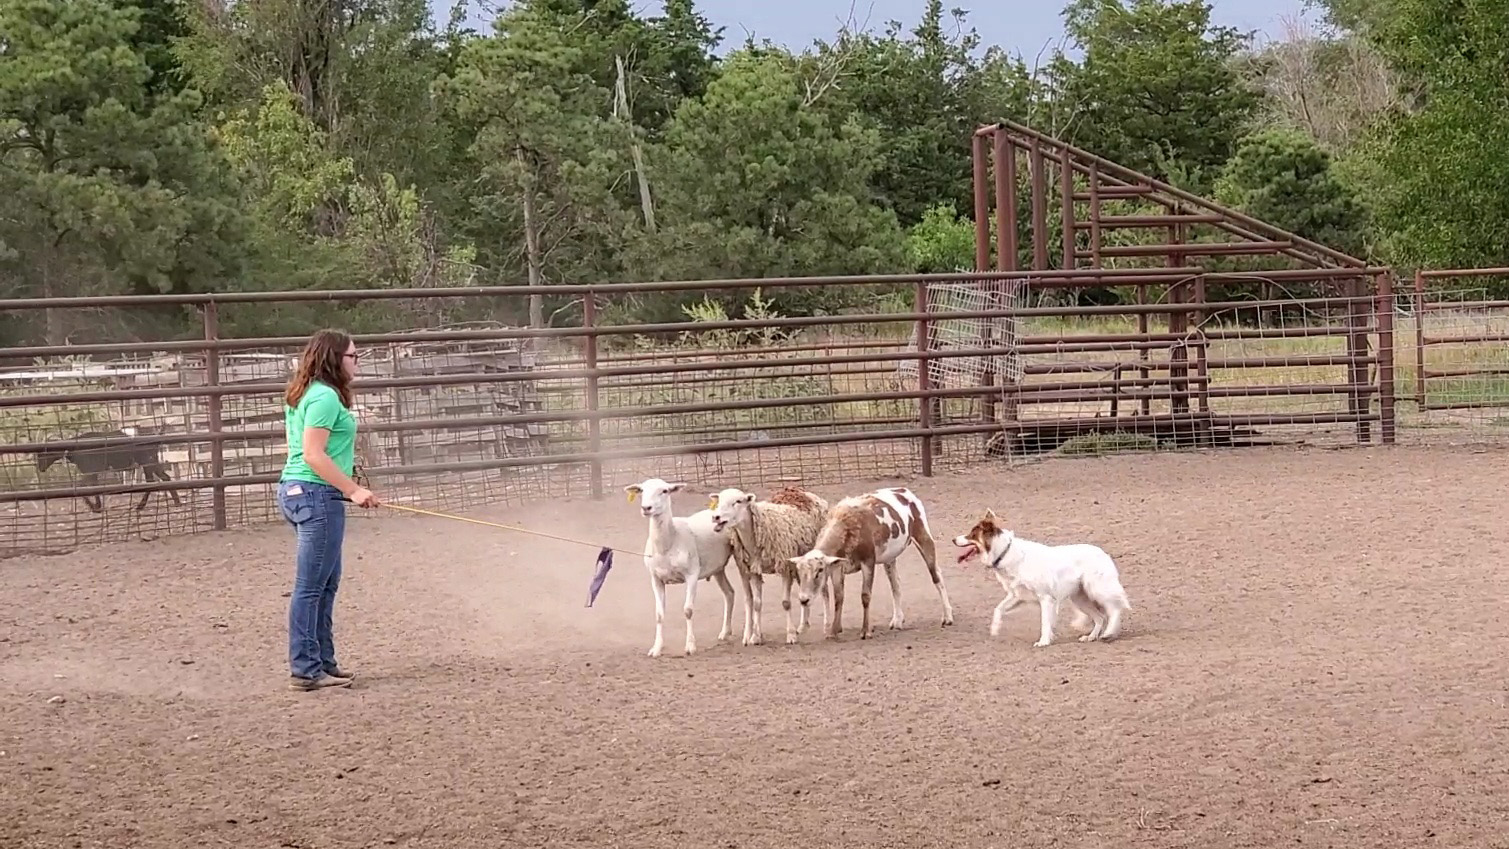 Anna Whyman and her dog, Bella, work on moving sheep during a practice session last fall. She started training and using stock dogs while an agribusiness student at NCTA.  (M. Crawford / NCTA News photo)